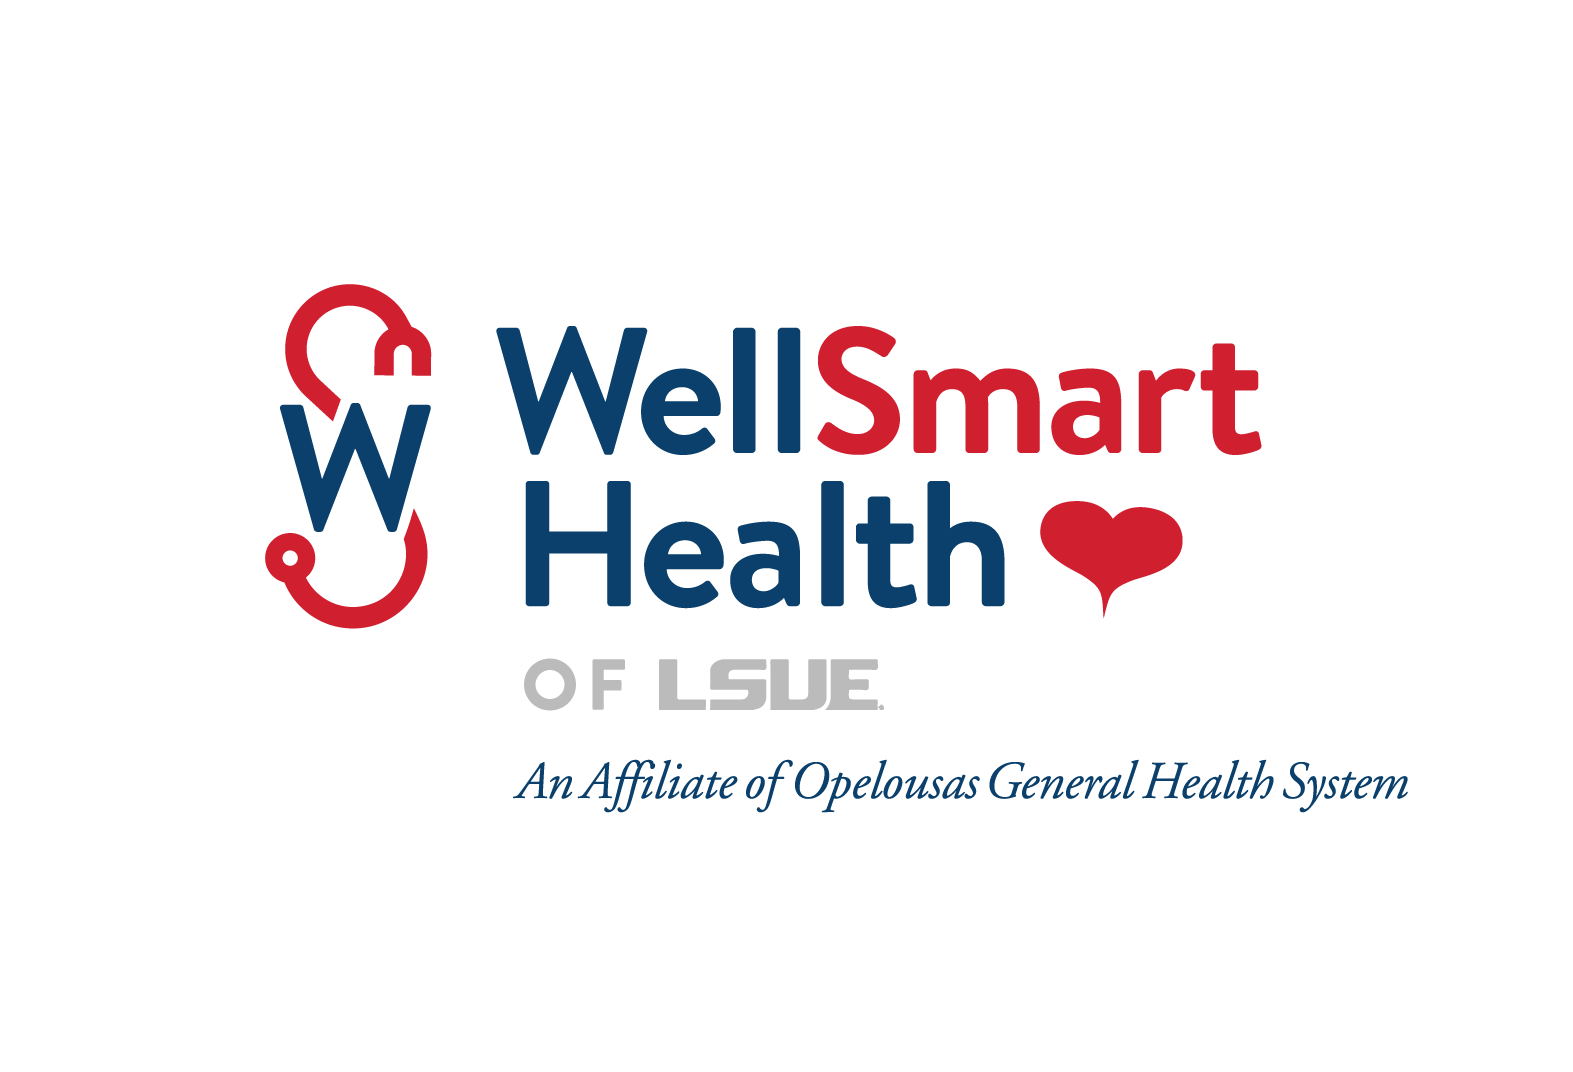 WellSmart Health of LSUE